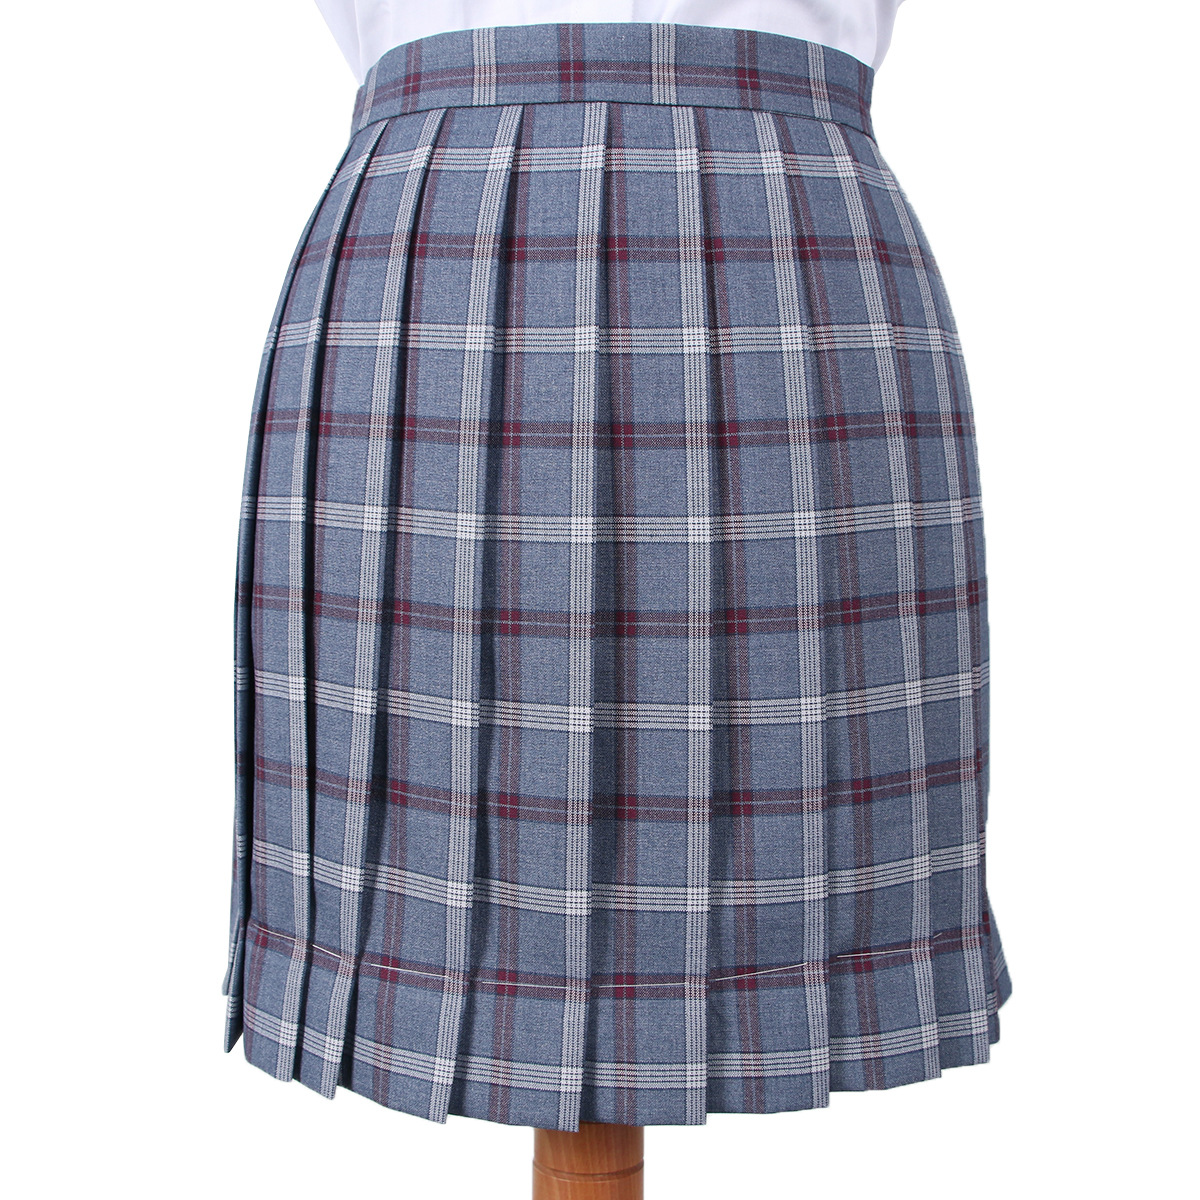 School Dresses Pleated Skirt School Blue-gray-red Plaid Pleated Half Skirt School Uniform Mini Skirts Sailor Suit Short Skirt